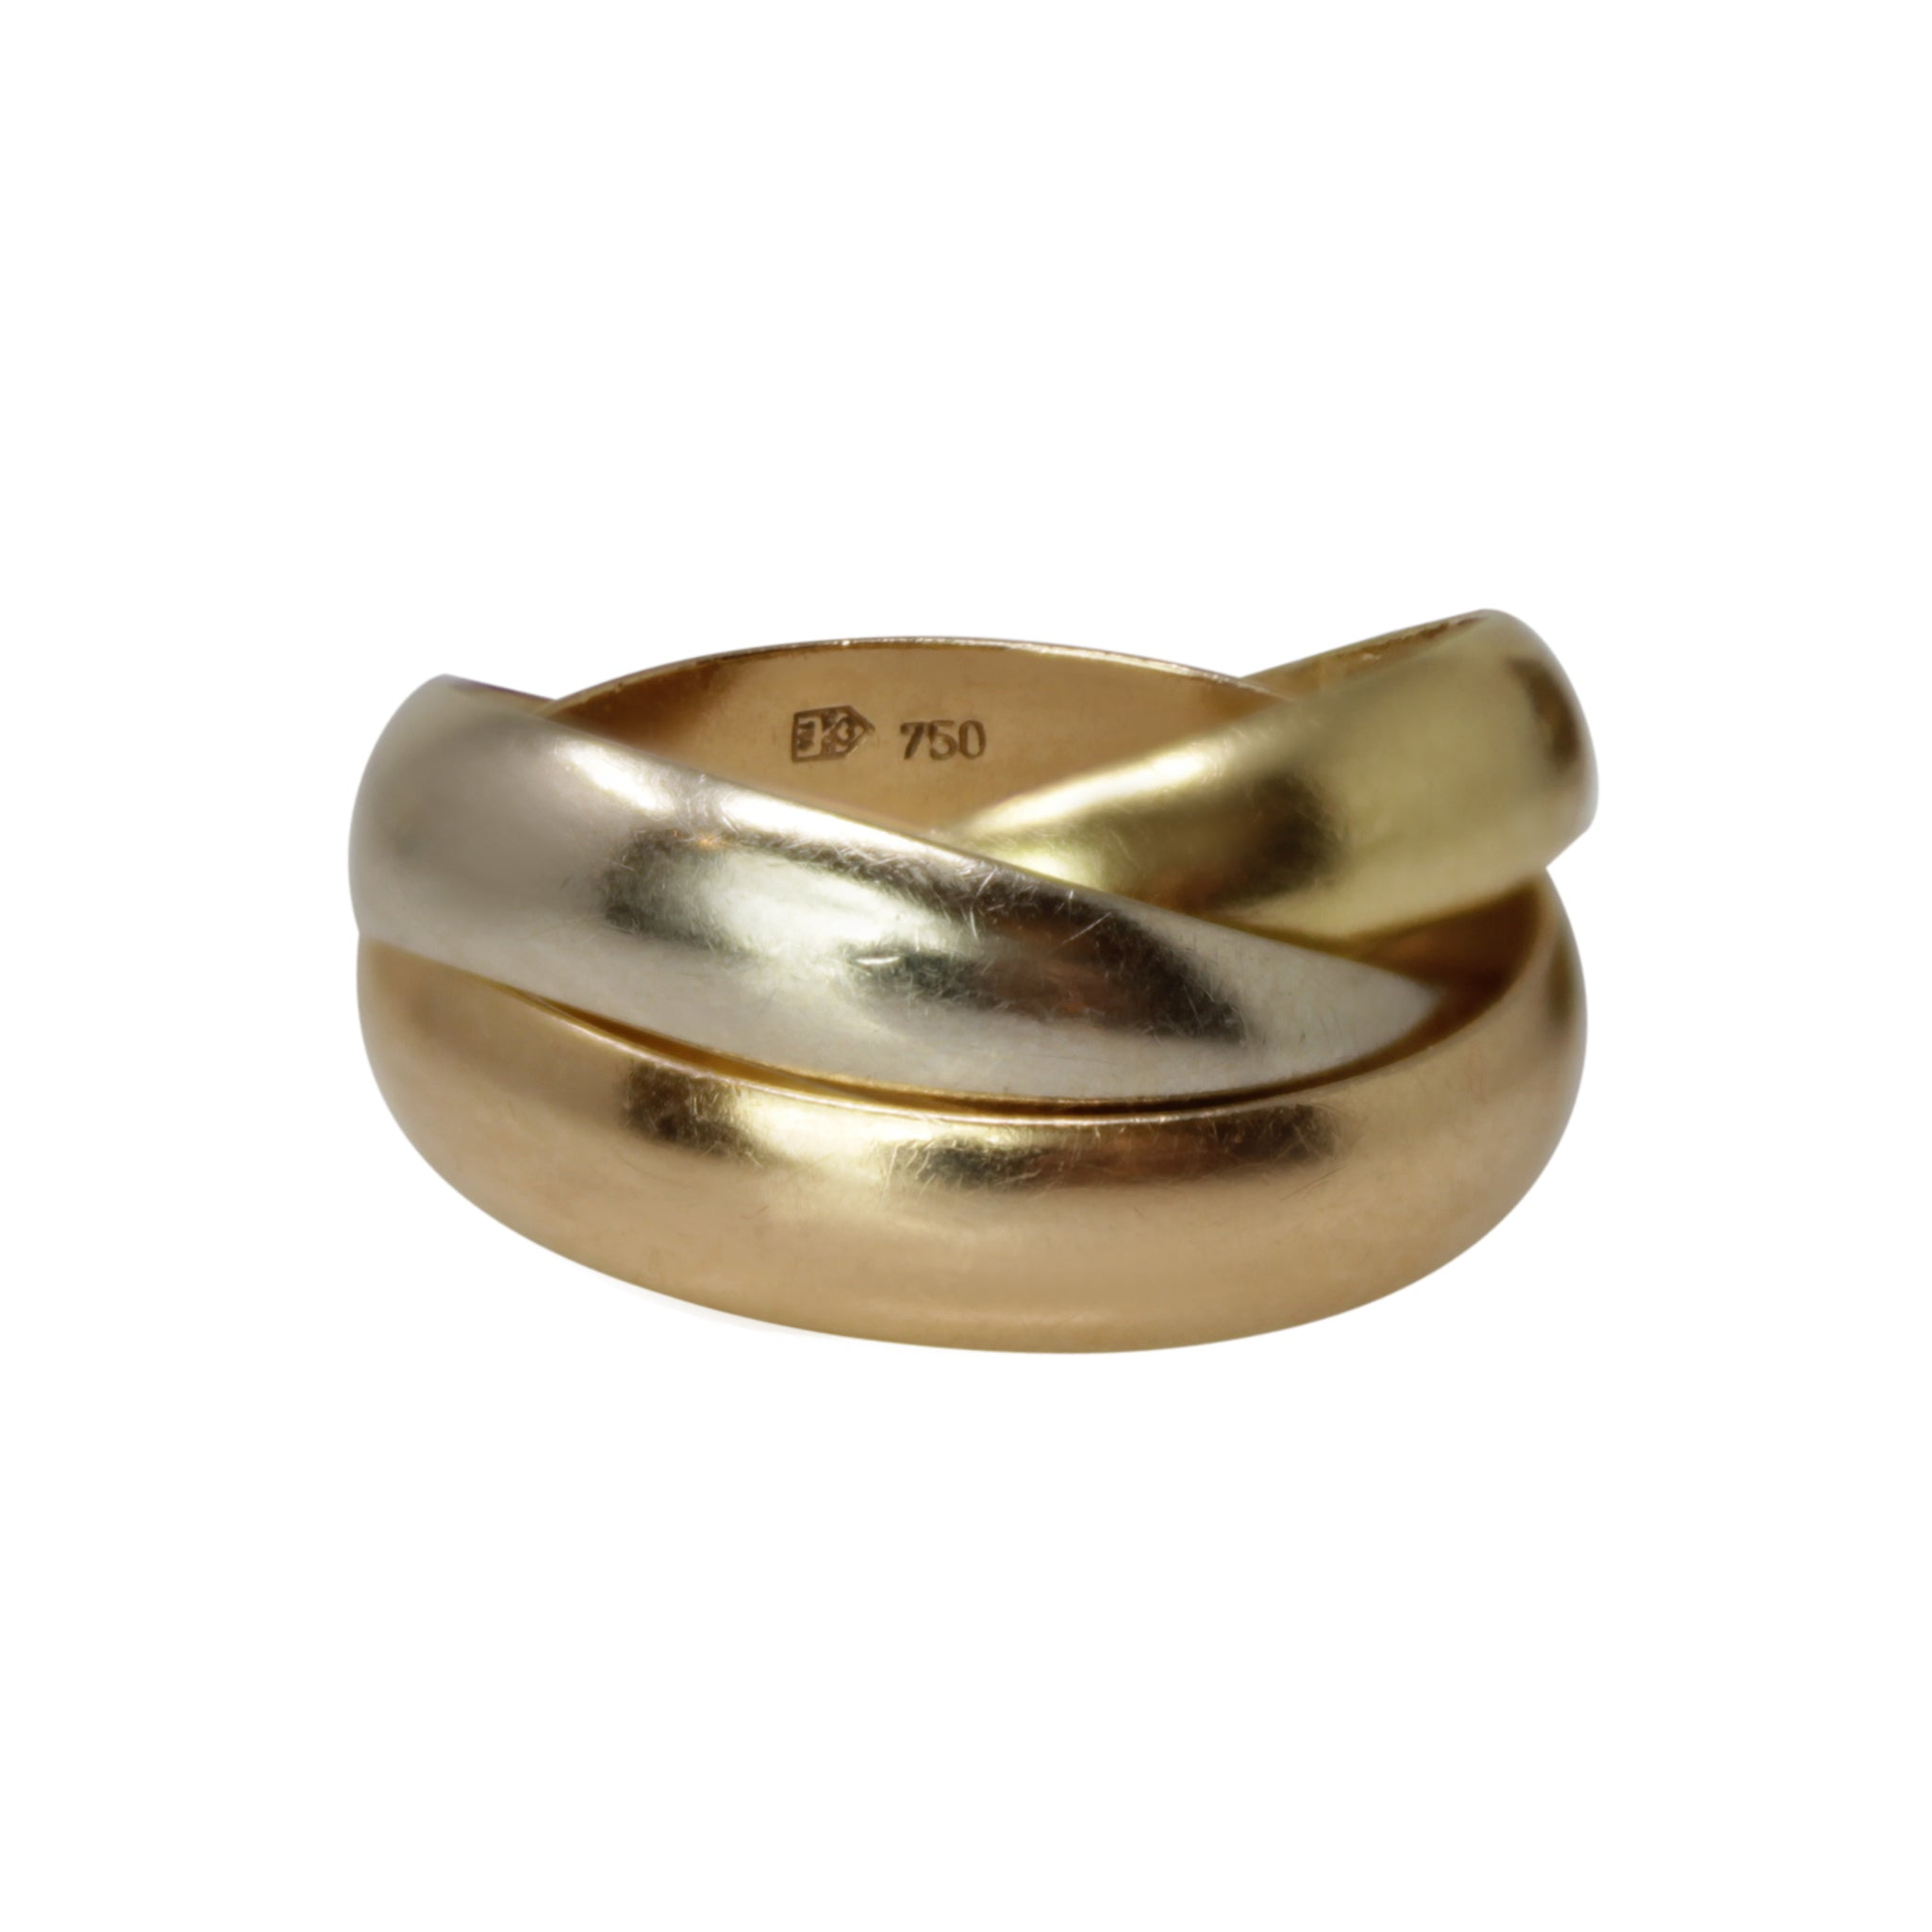 Eternity Entwined - 18k Tri Color White, Yellow and Rose Gold Trinity Rings Size 4.25